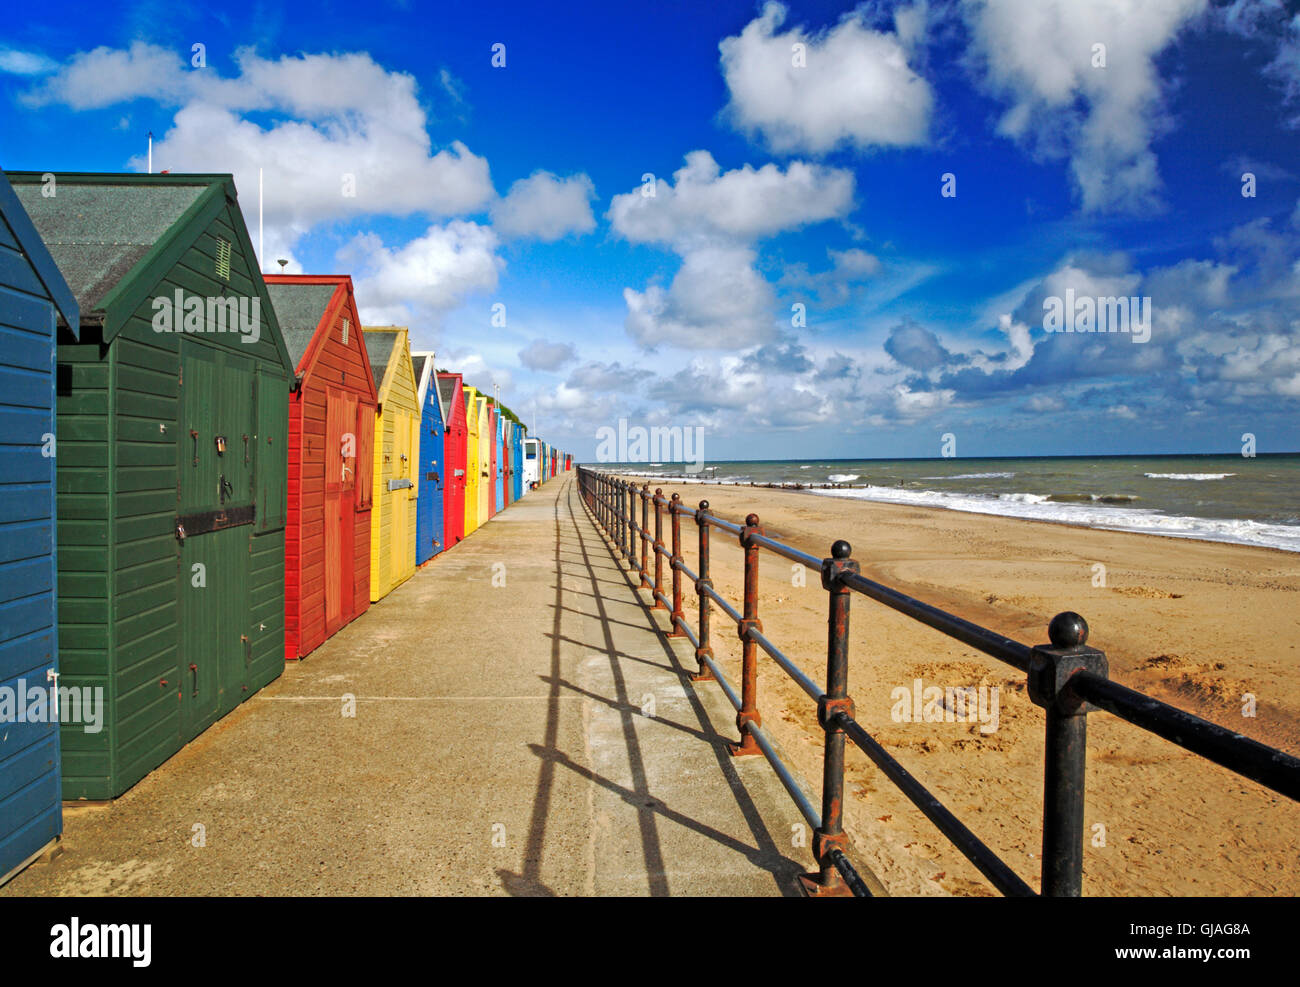 A view of the promenade and beach huts on the North Norfolk coast at Mundesley, Norfolk, England, United Kingdom. - Stock Image